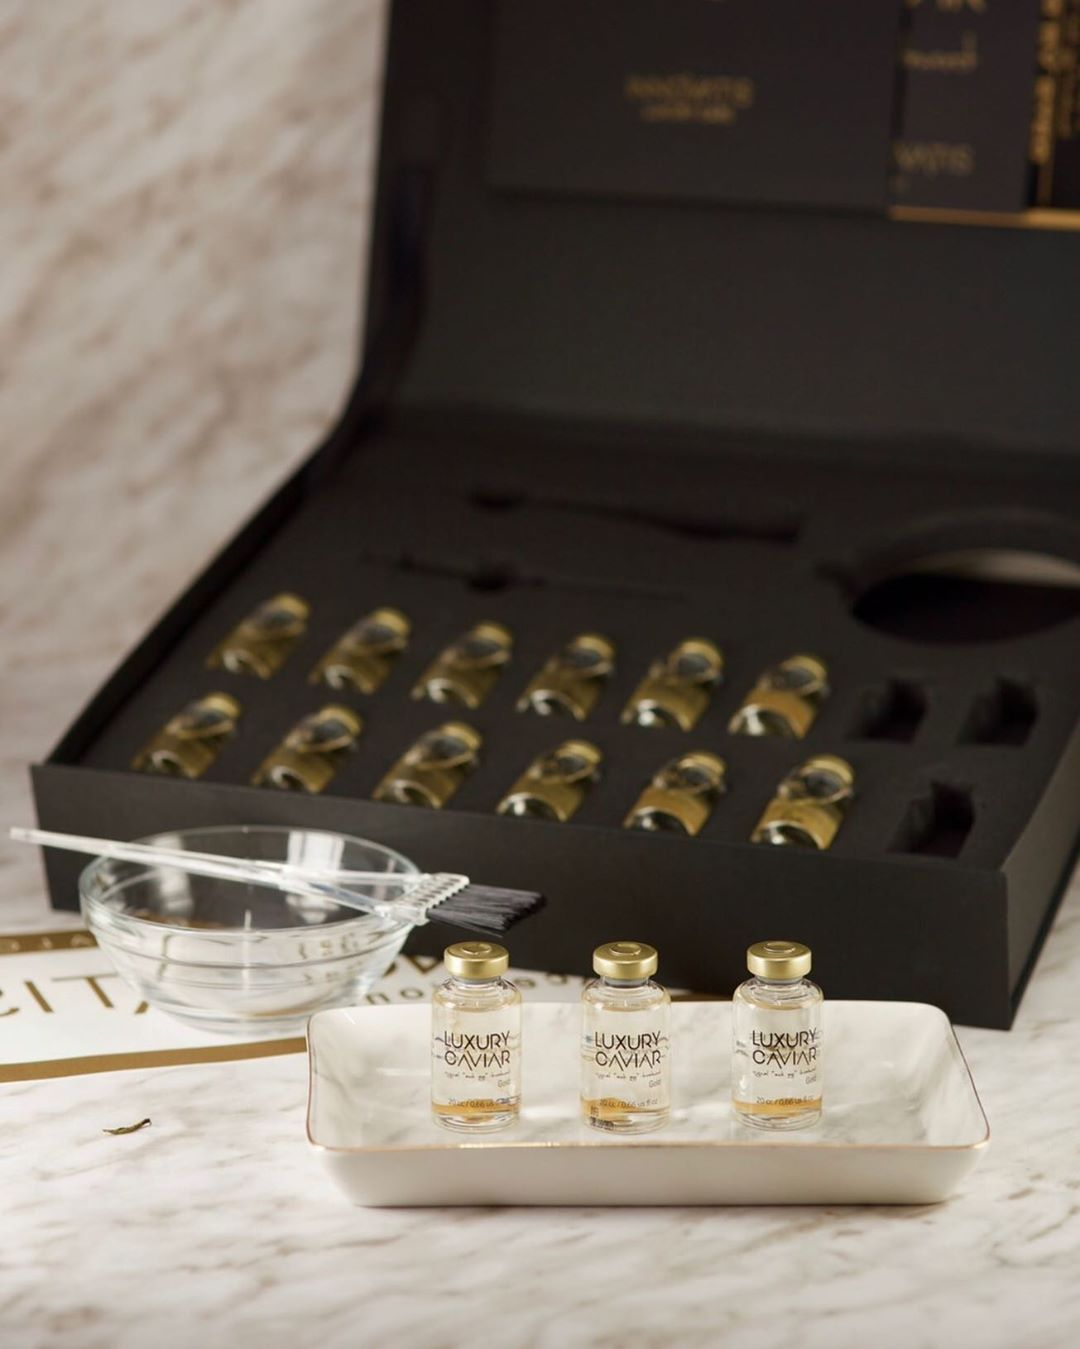 KIT Luxury Caviar 15